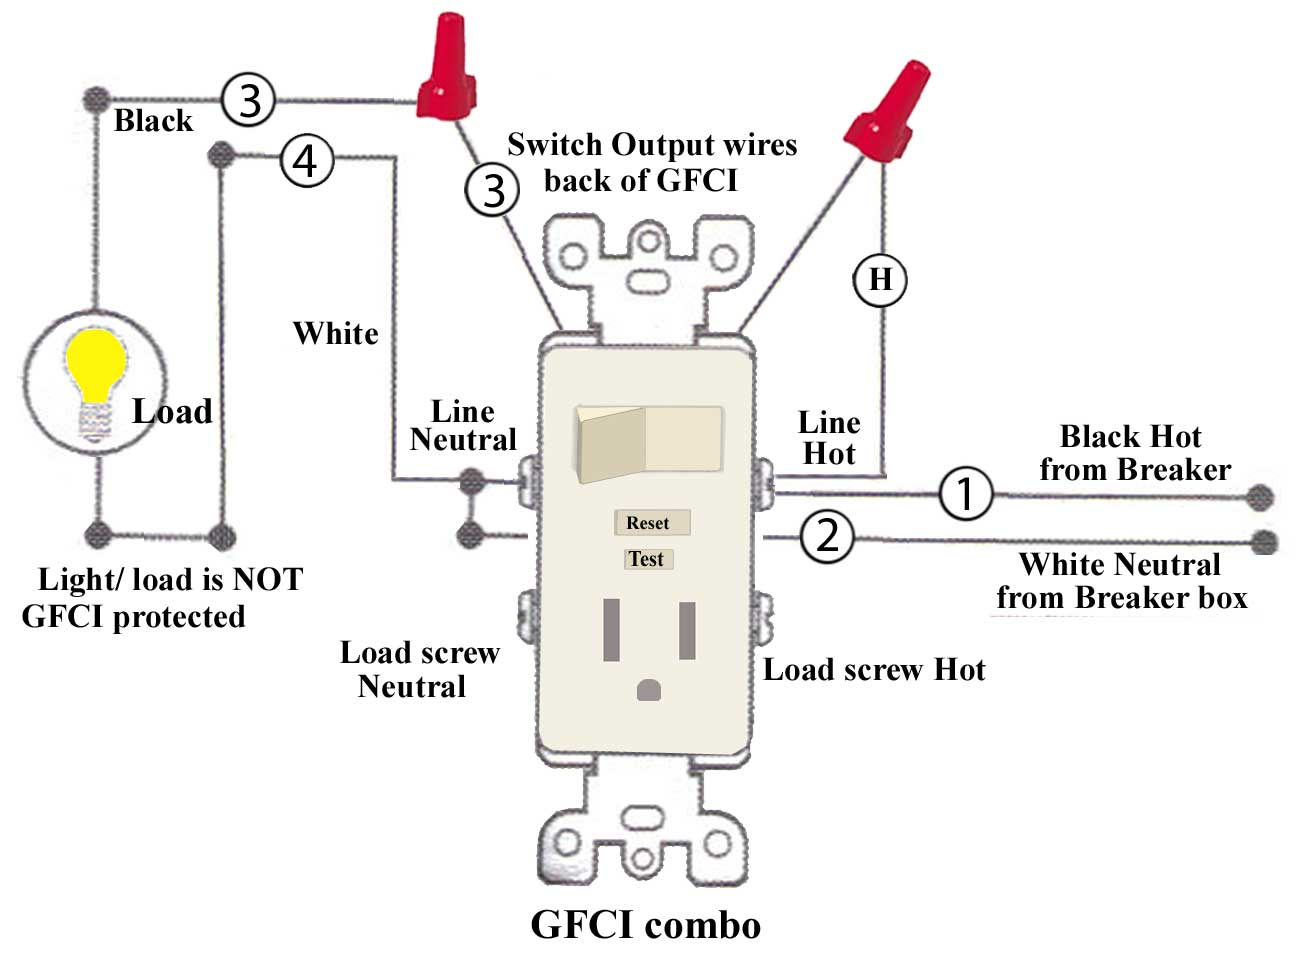 GFCI combo wiring 4 how to install and troubleshoot gfci light switch receptacle combo wiring diagram at n-0.co